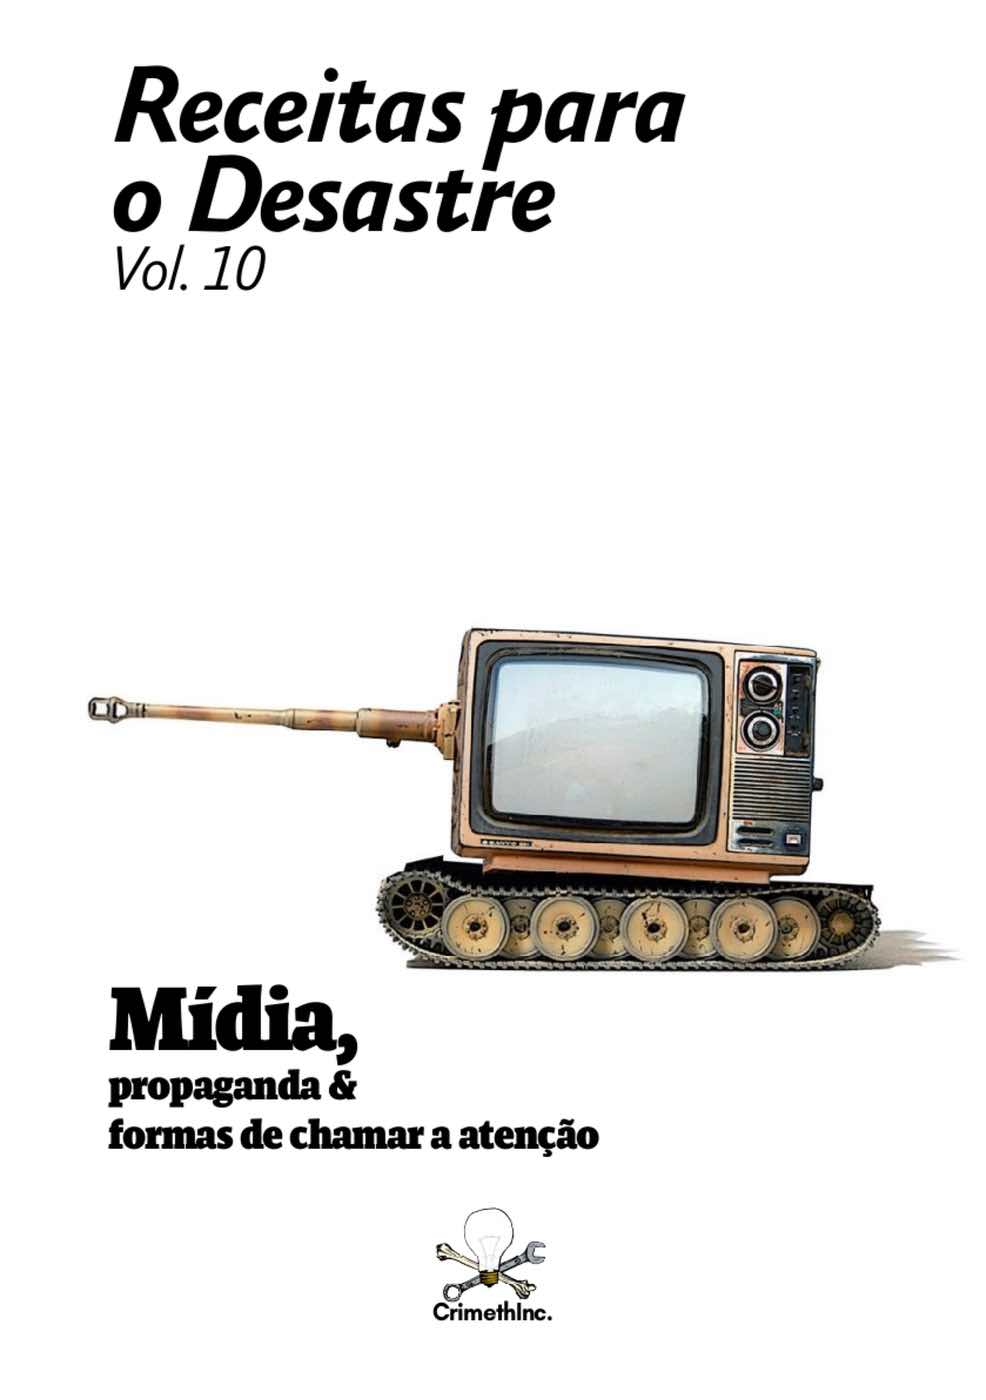 Photo of 'Receitas para o Desastre Vol. 10 (Portugues Brasileiro)' front cover